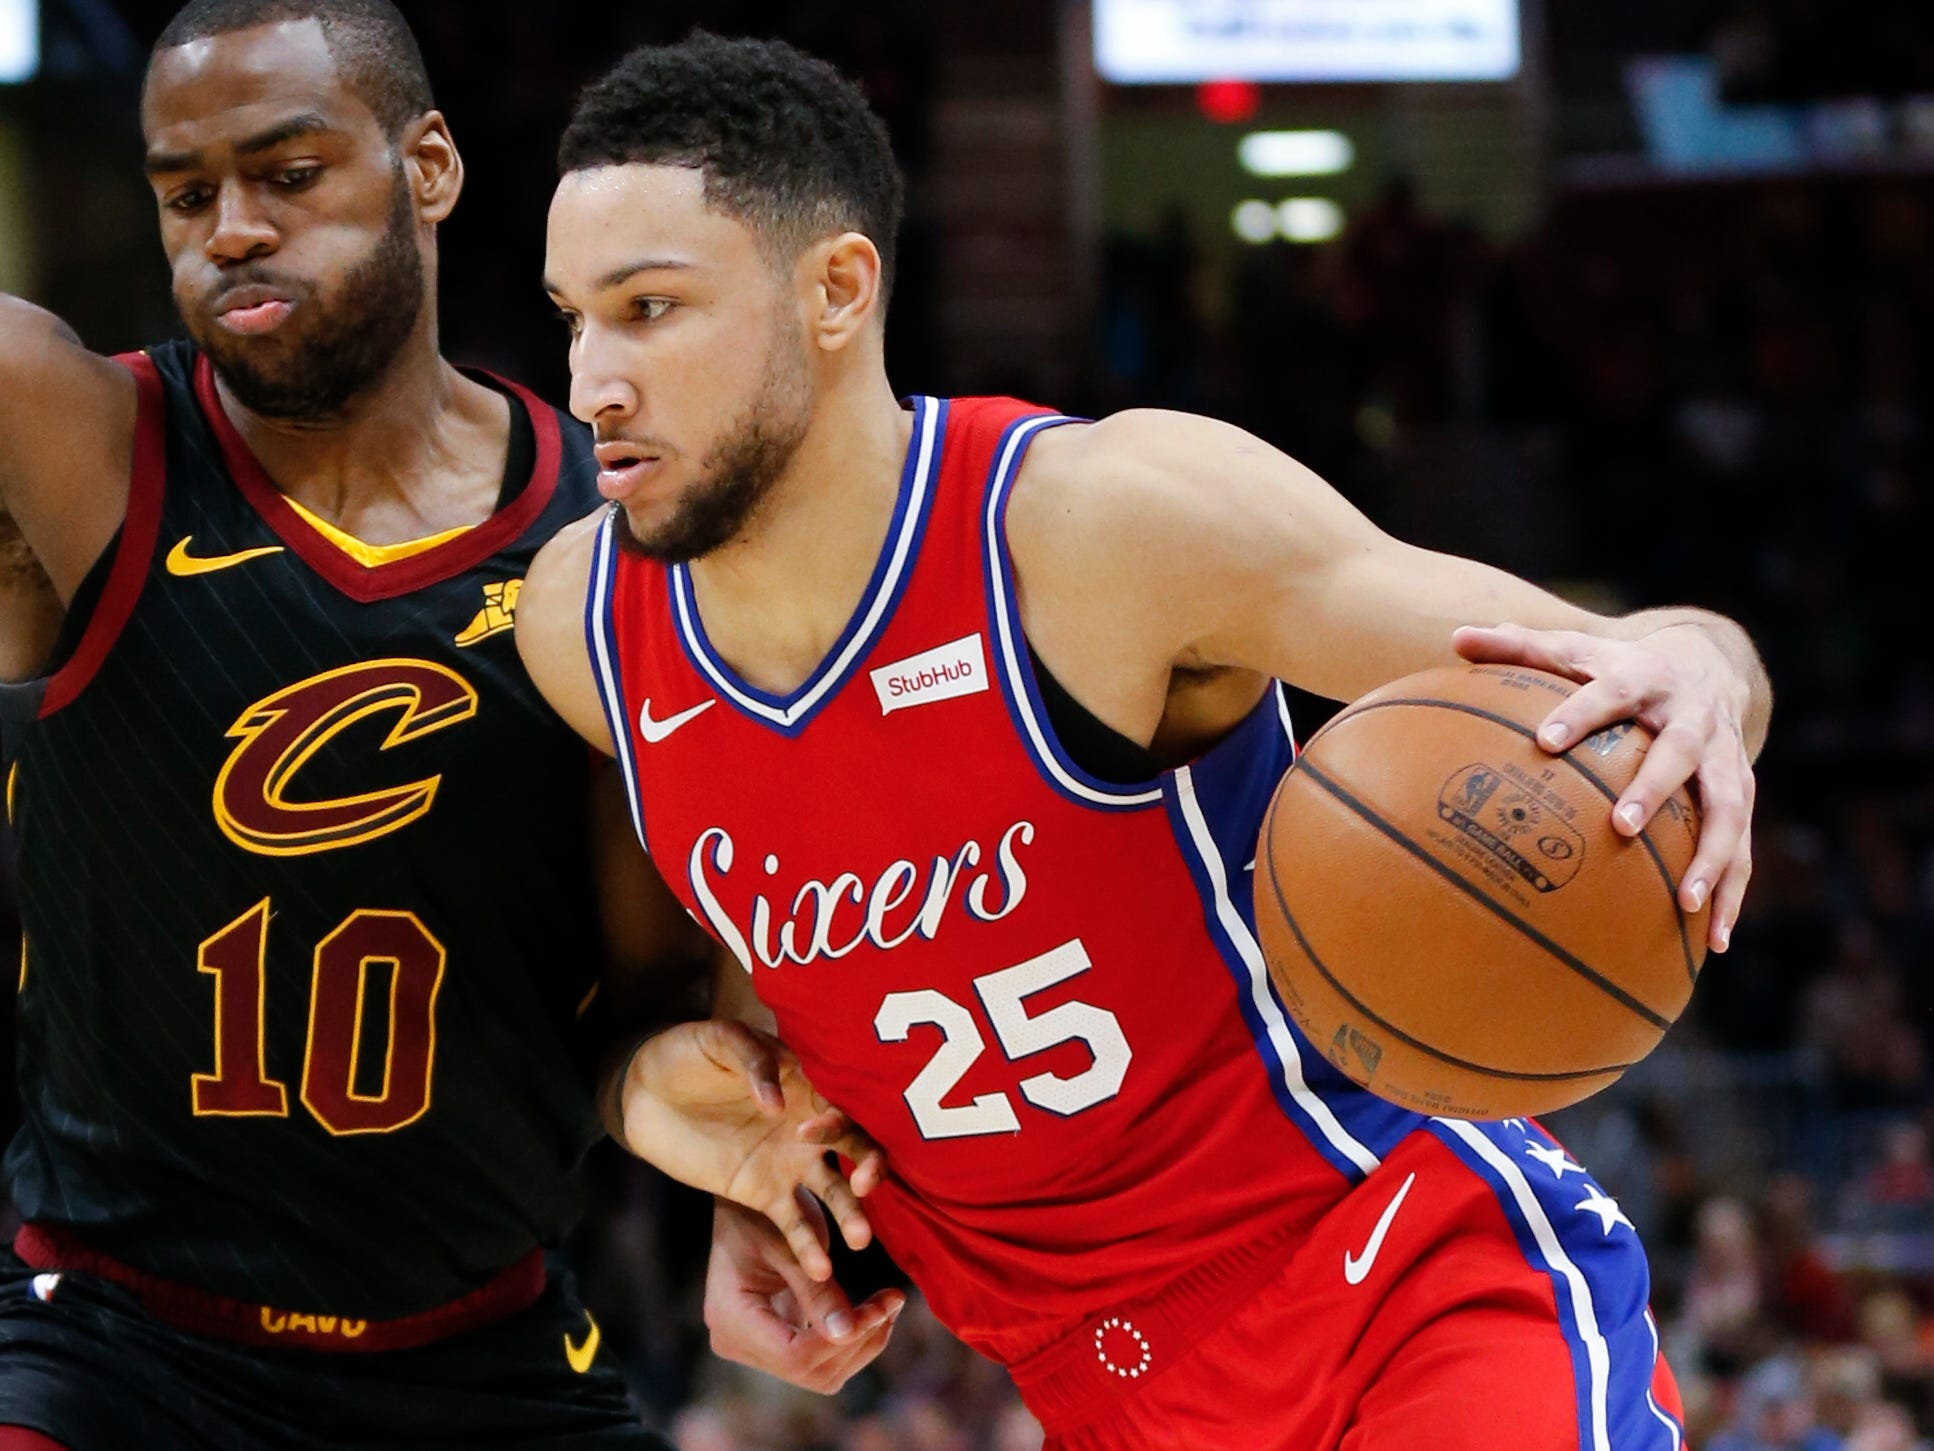 27. Ben Simmons, 76ers (Dec. 16): 22 points, 14 assists, 11 rebounds in 128-105 win over Cavaliers (third of season).